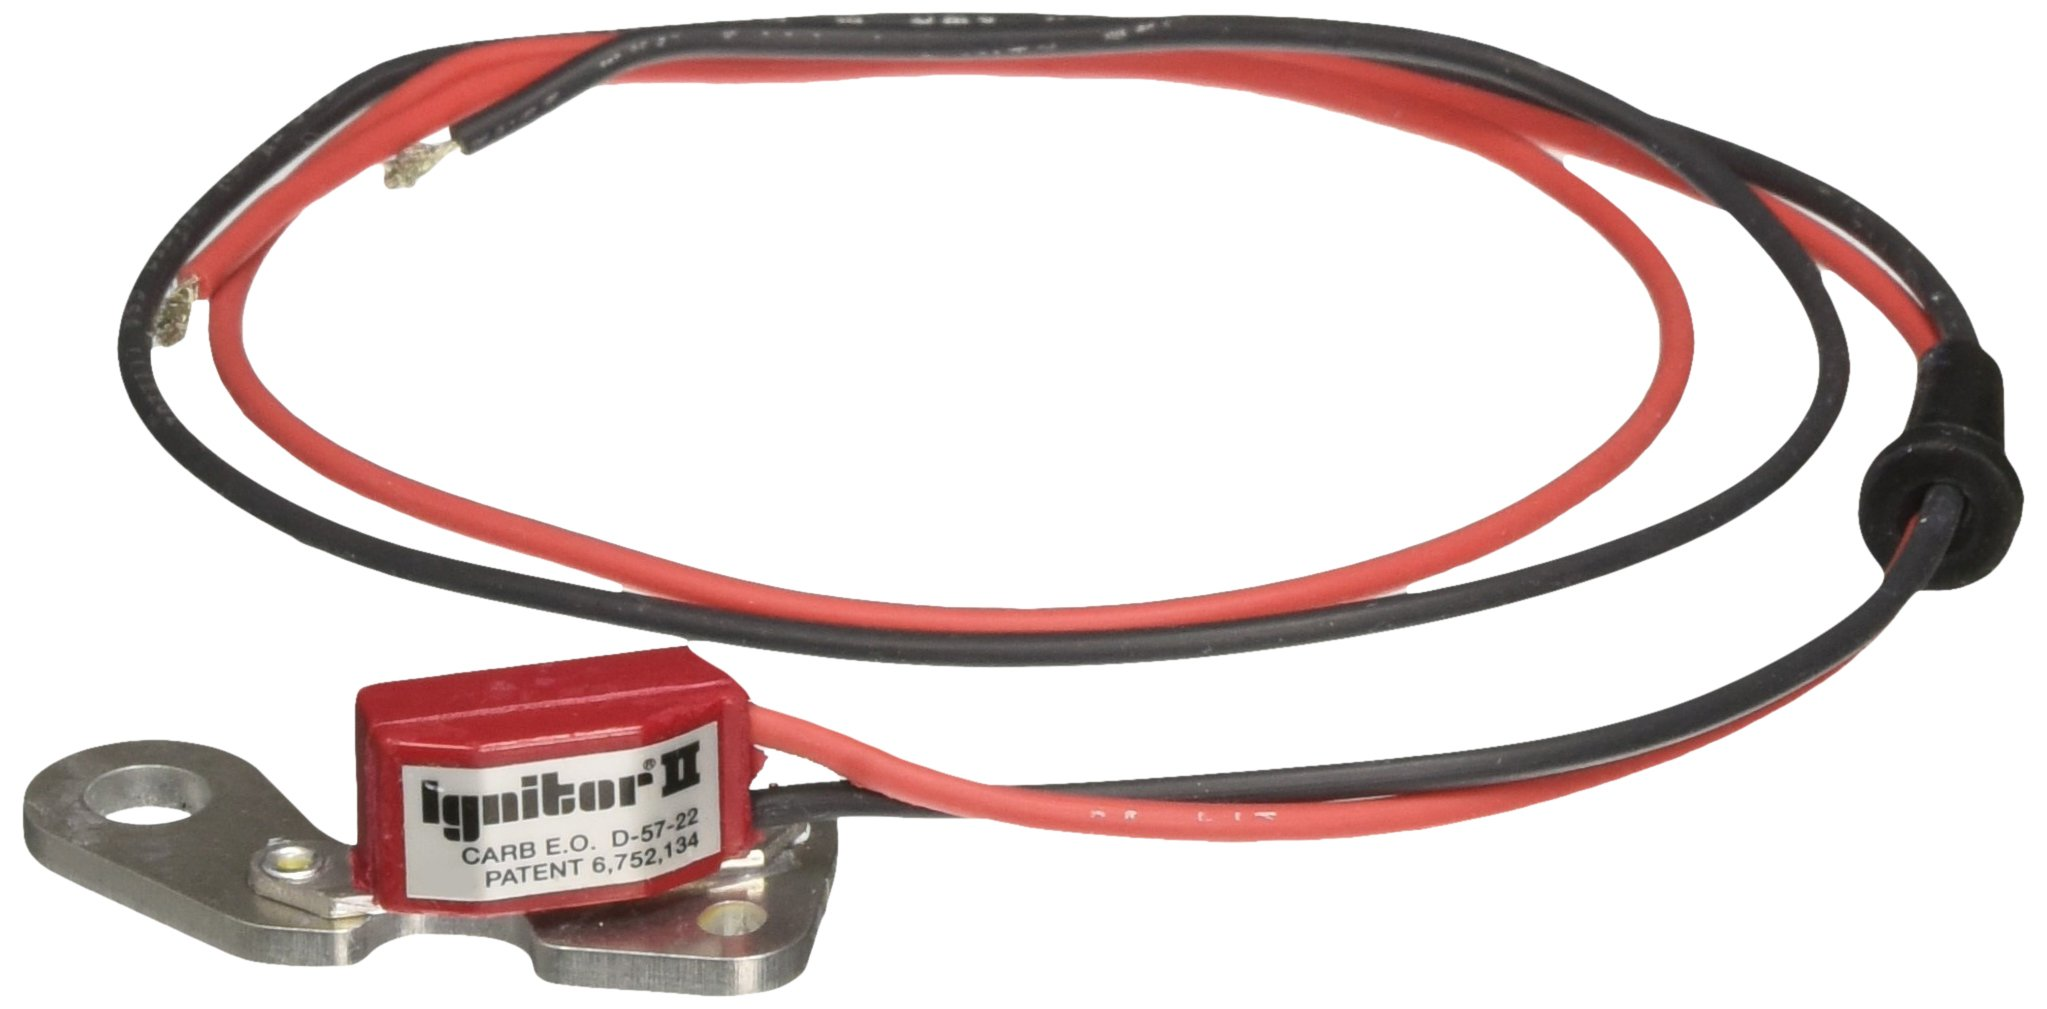 Pertronix 91763LS Ignitor II for Nissan Patrol 6 Cylinder Engine by Pertronix